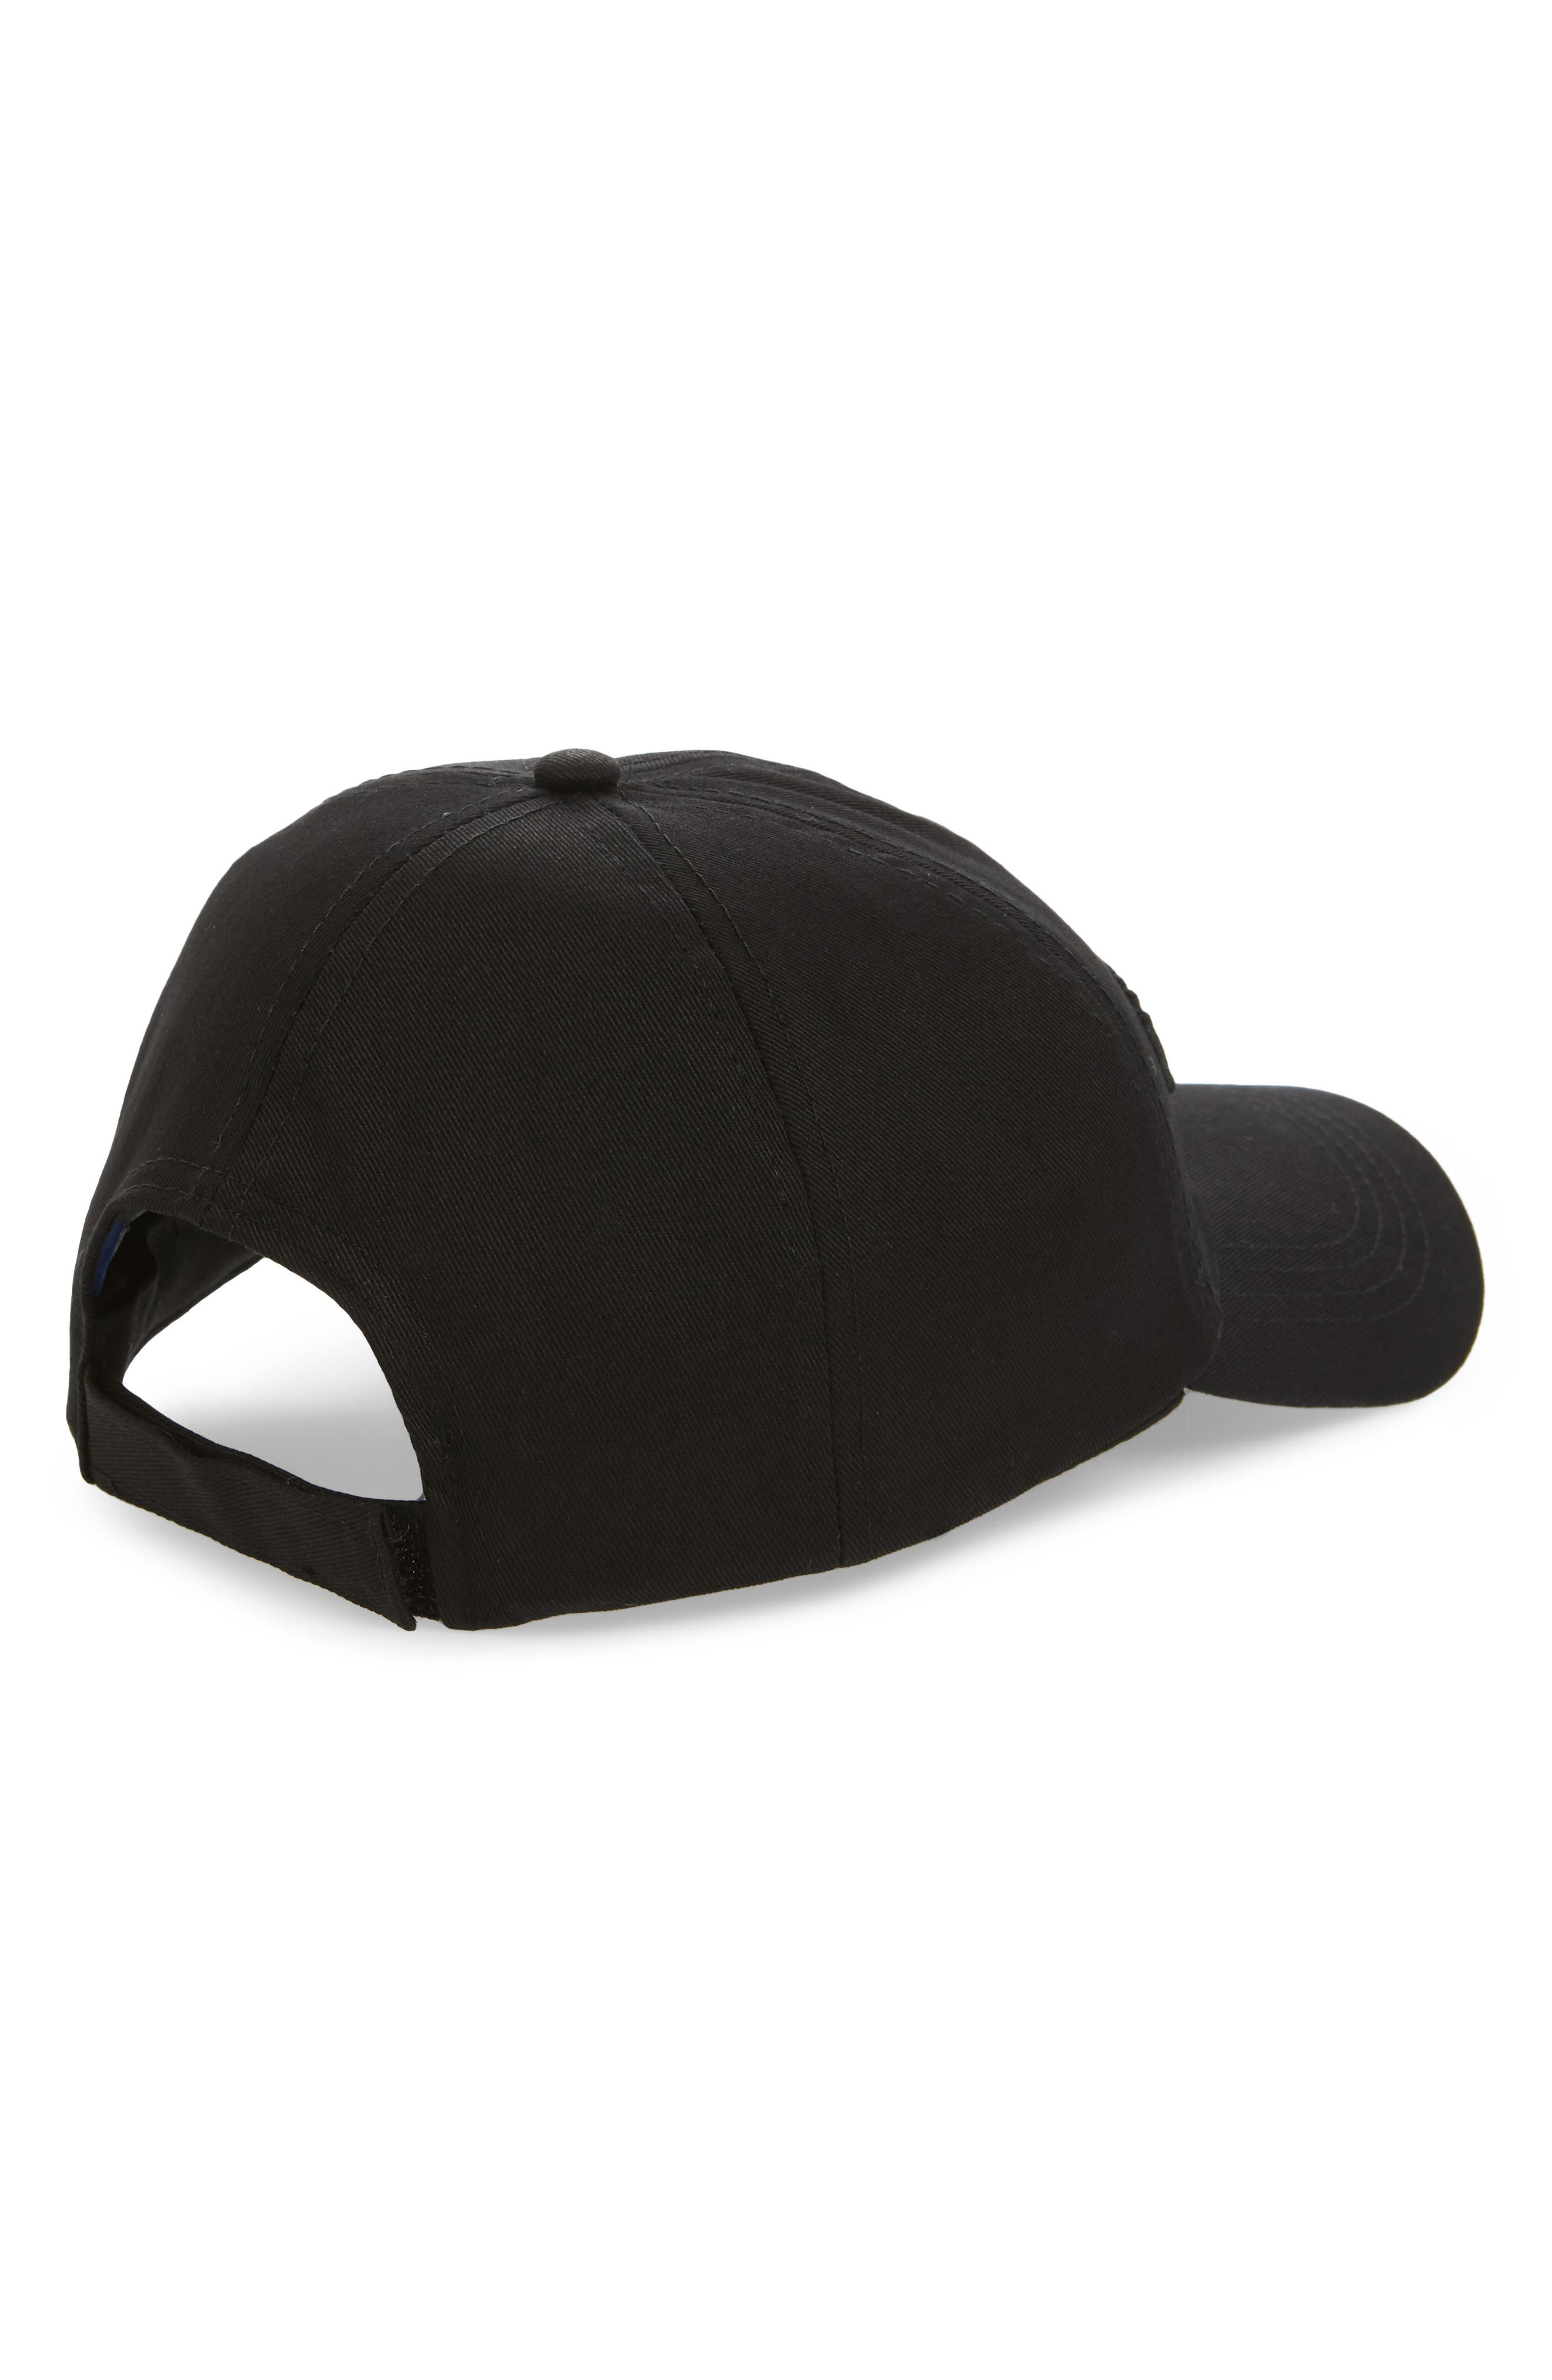 Embroidered Ball Cap,                             Alternate thumbnail 2, color,                             West Coast